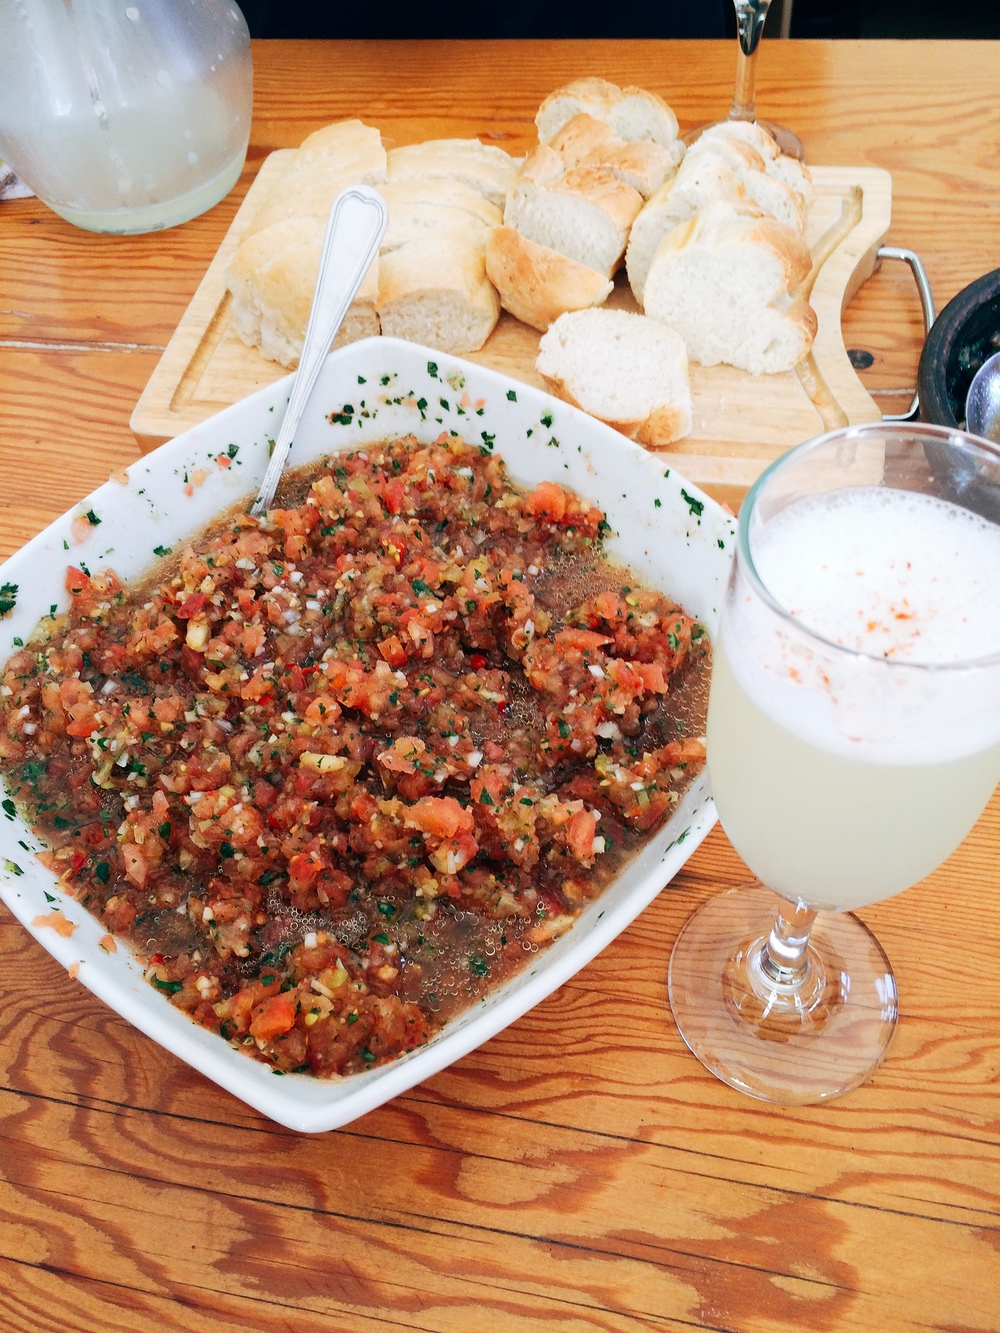 The perfect Chilean appetiser, fresh pebre, fresh bread and a freshly shaken pisco sour